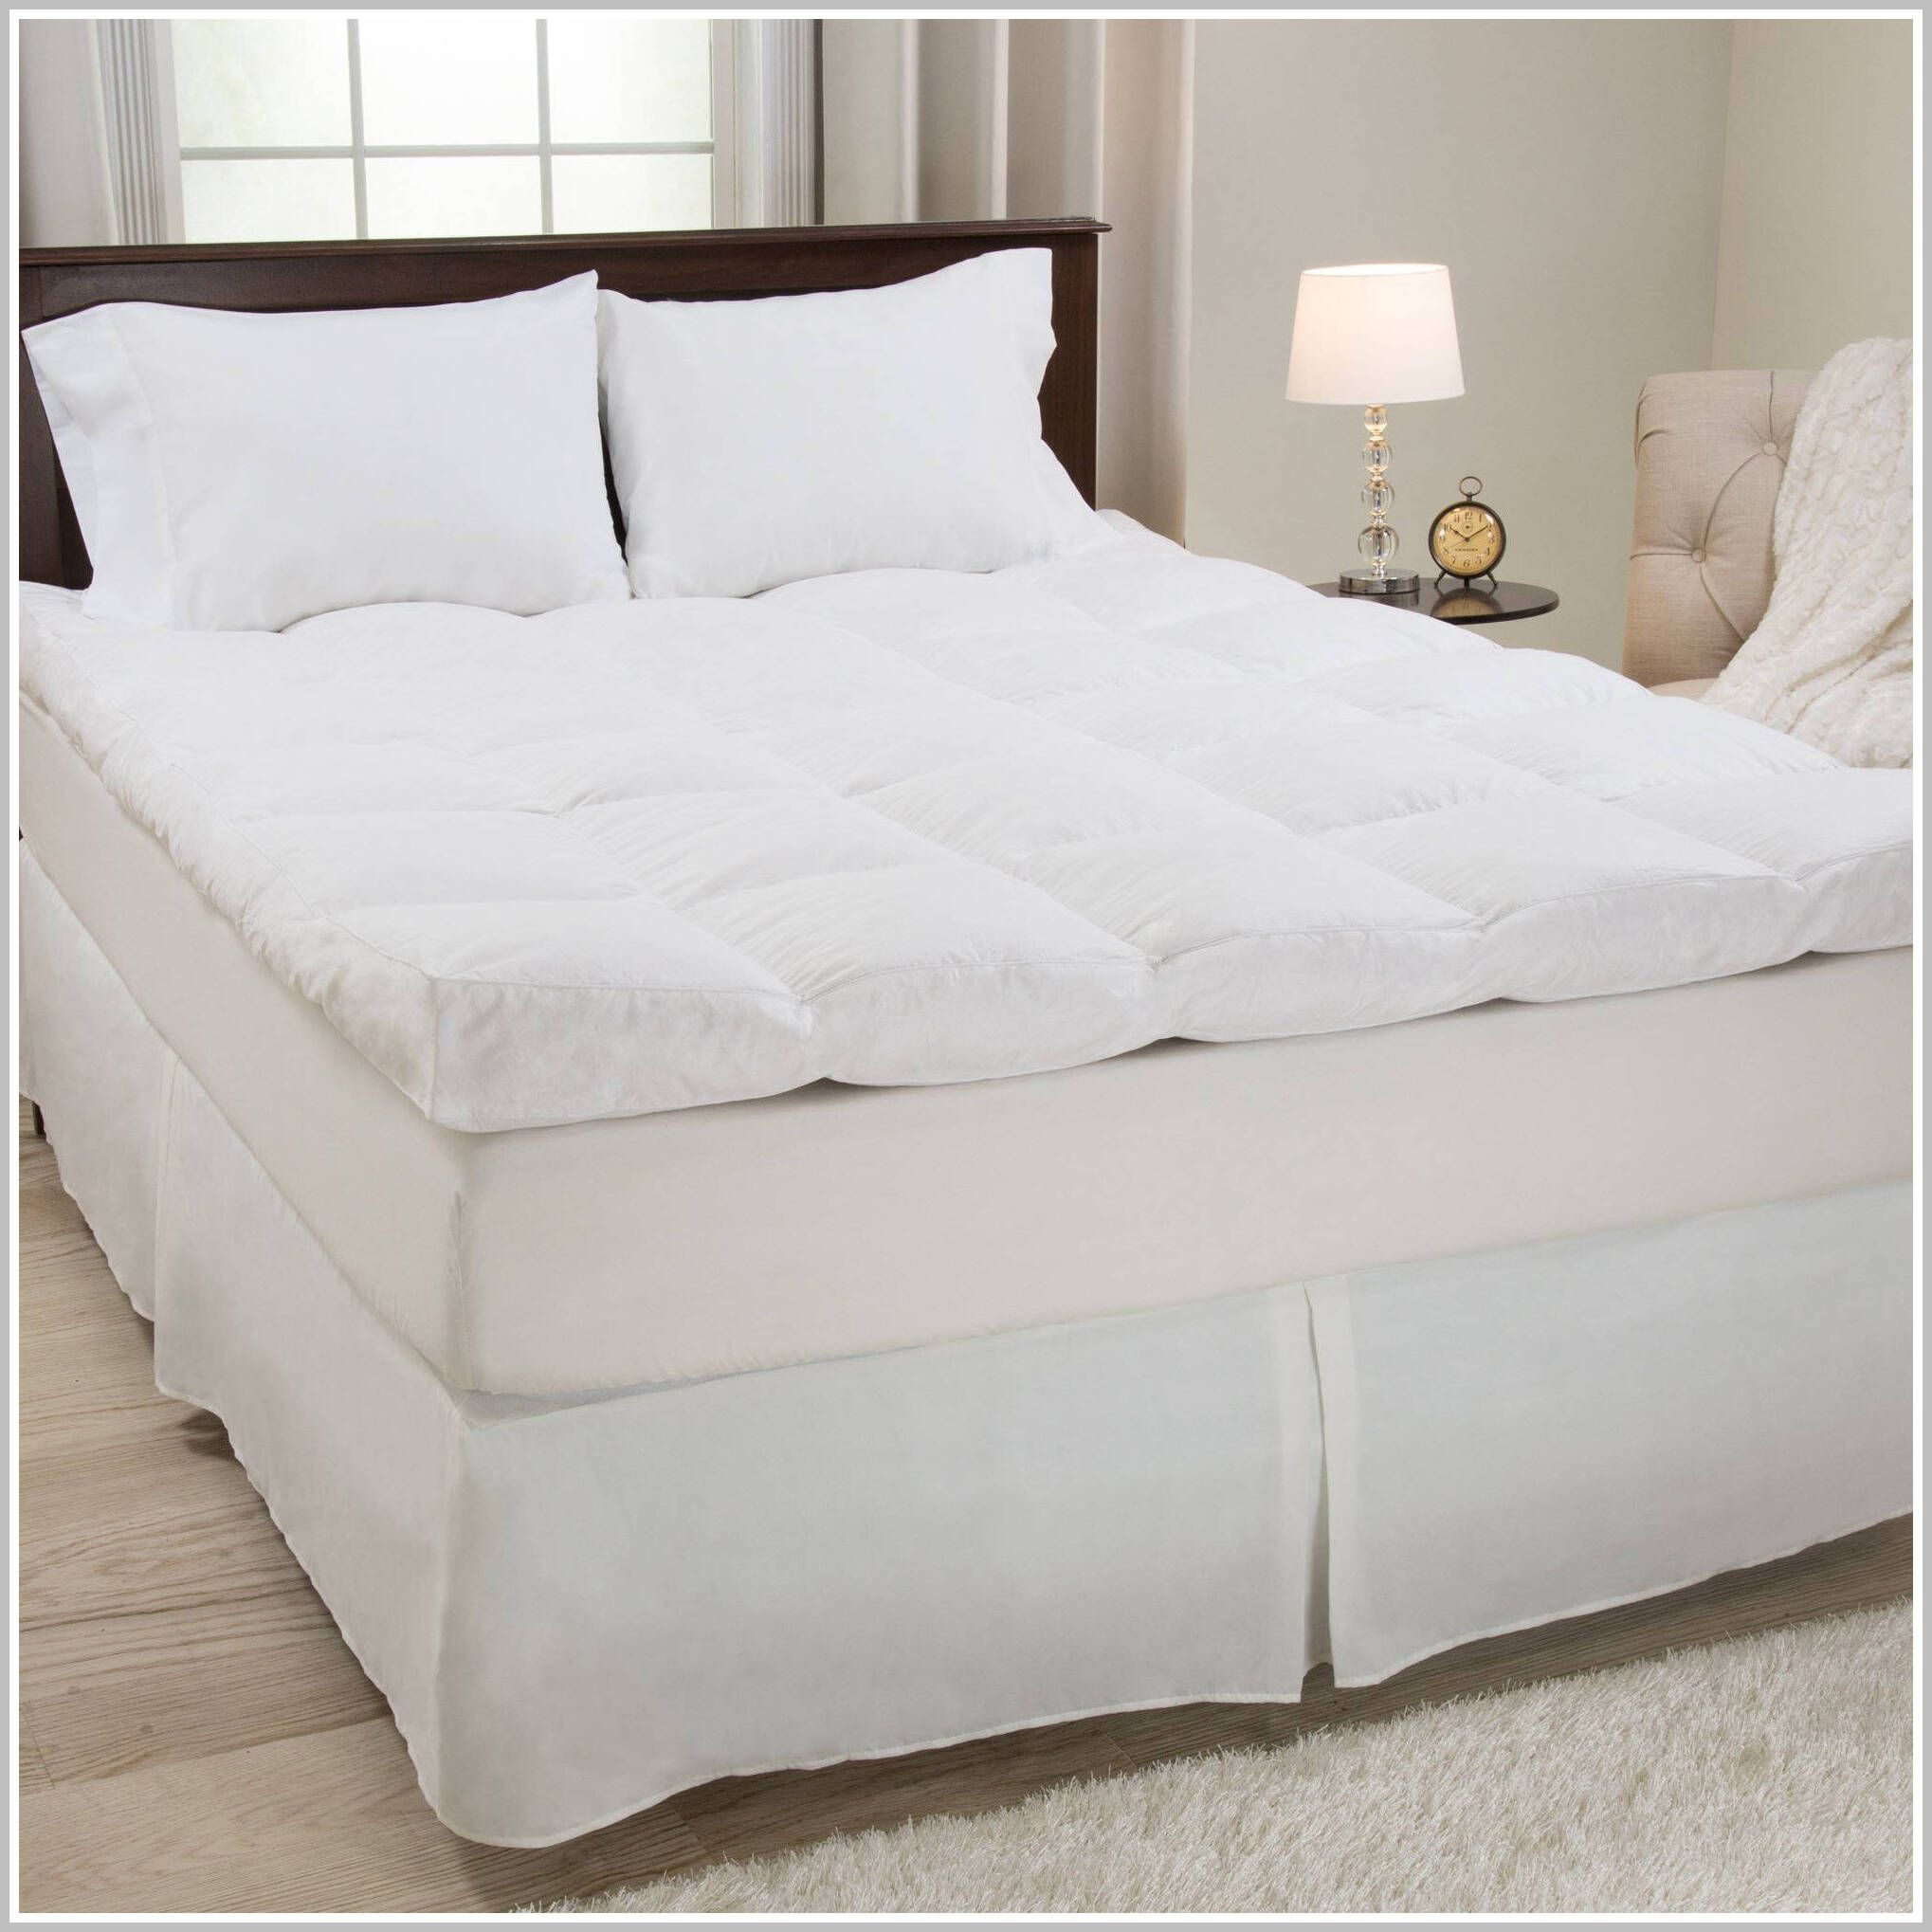 79 Reference Of Mattress Topper Vs Featherbed In 2020 Lavish Home Mattress Best Mattress